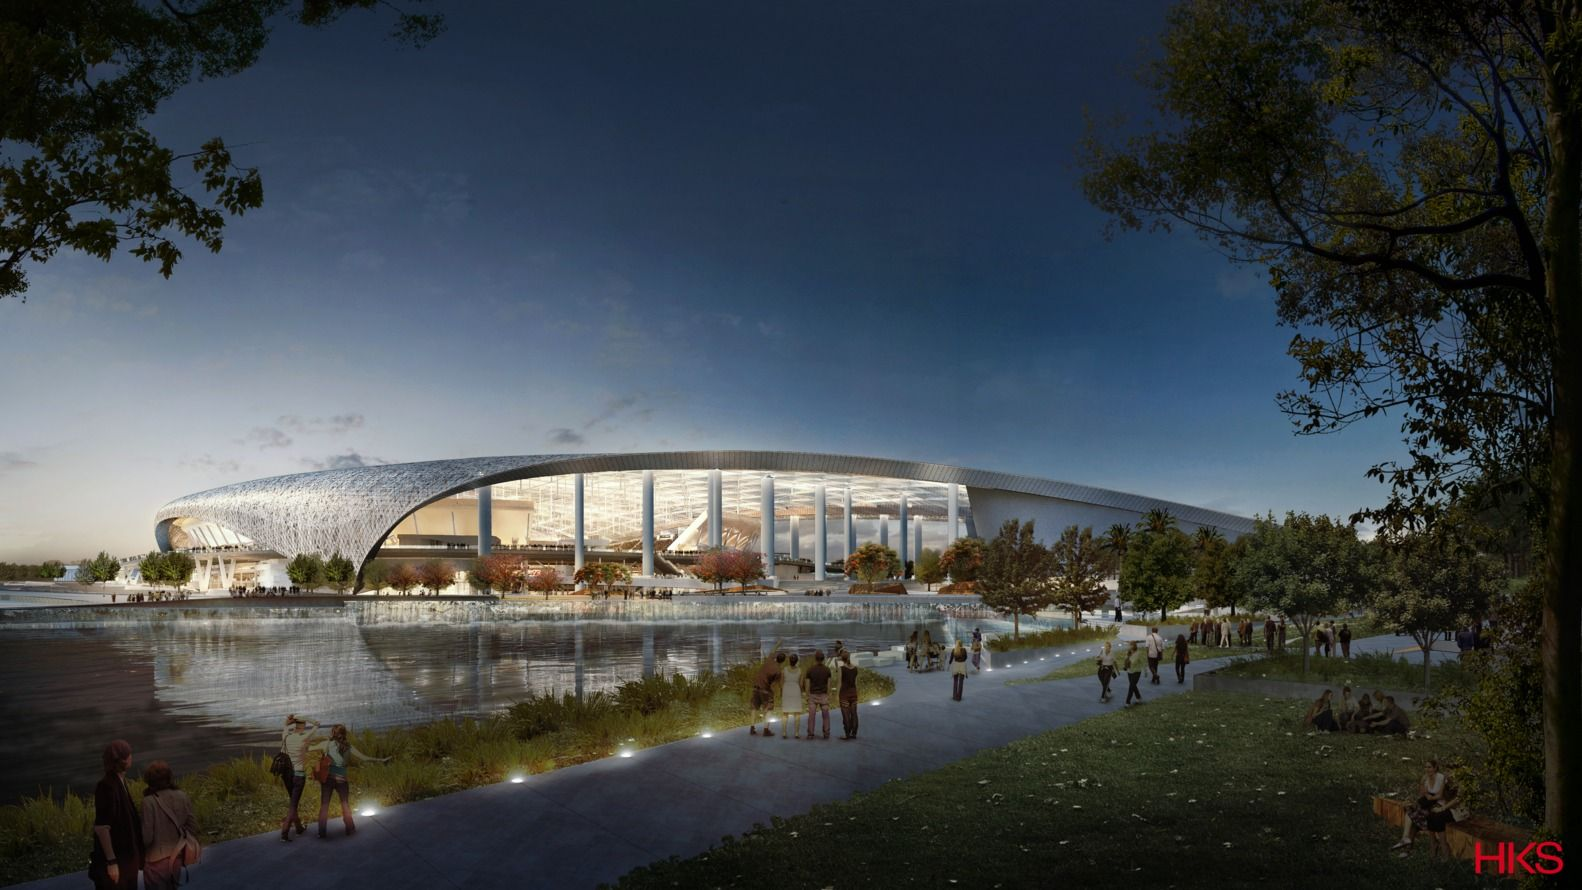 Gallery Of Hks Designed L A Stadium Will Be The Largest In The Nfl 1 Stadium Architecture Stadium Los Angeles Rams